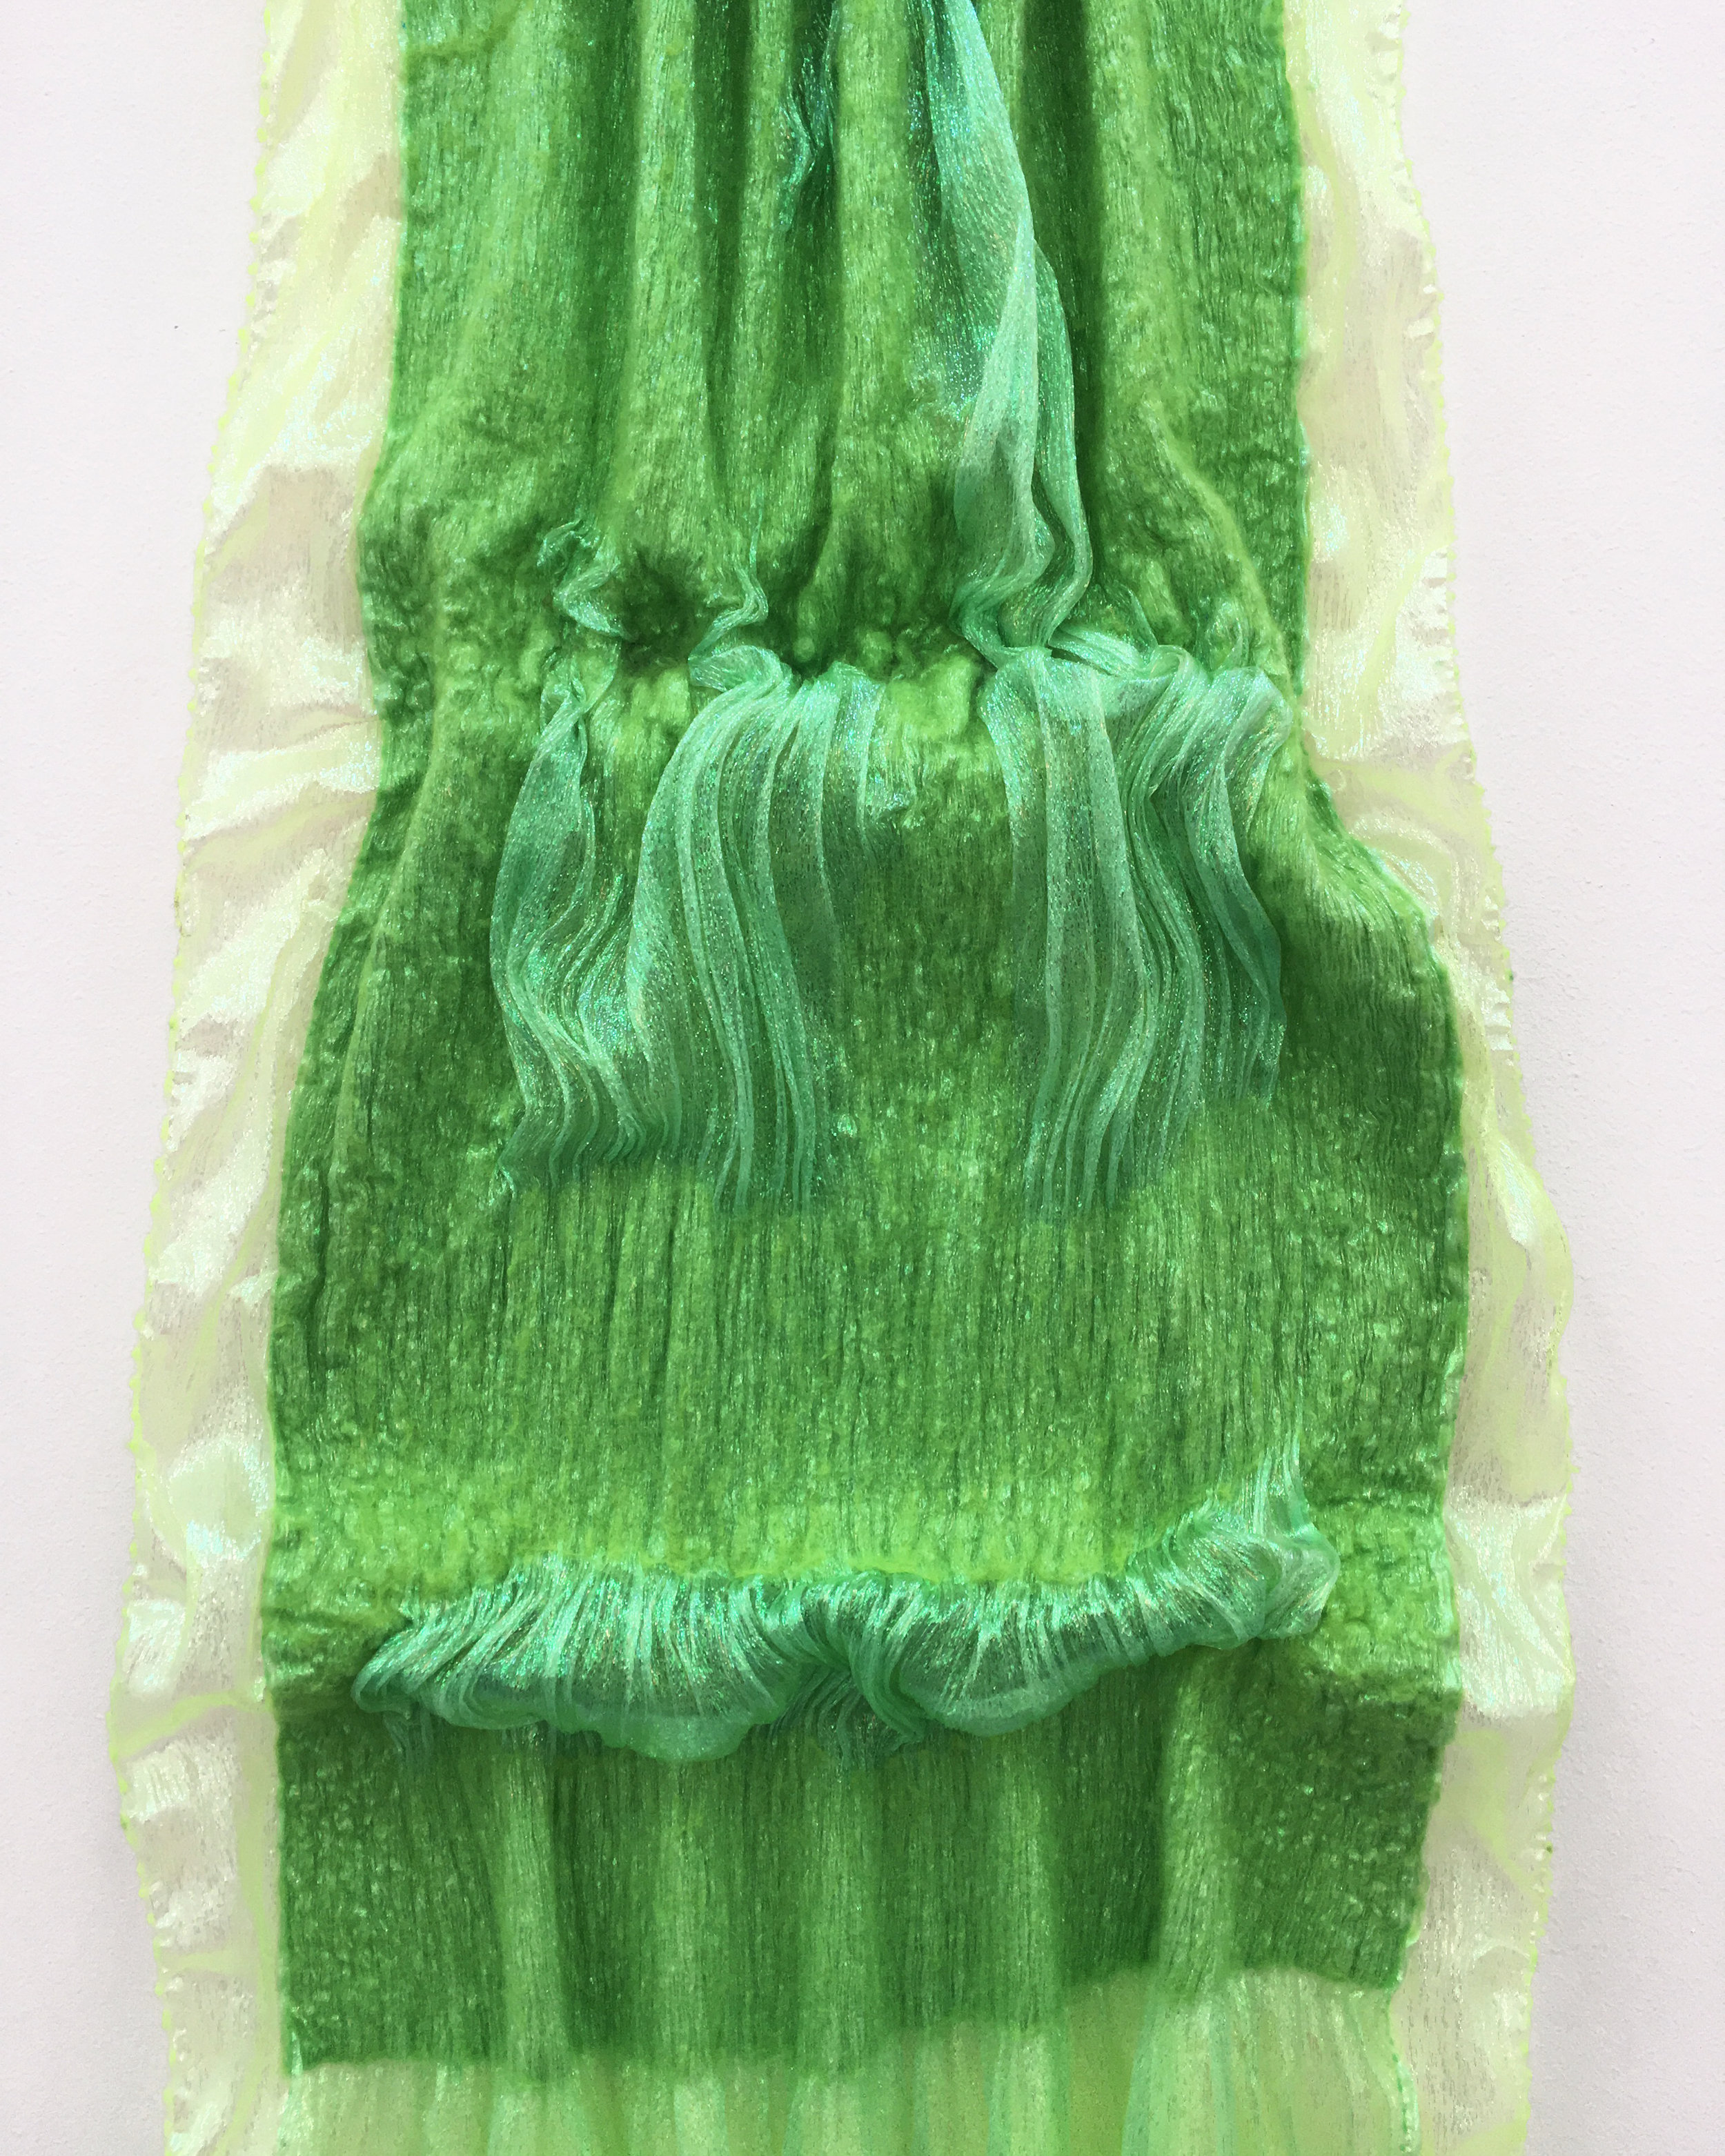 Rookie´s Rave - Green (detail)